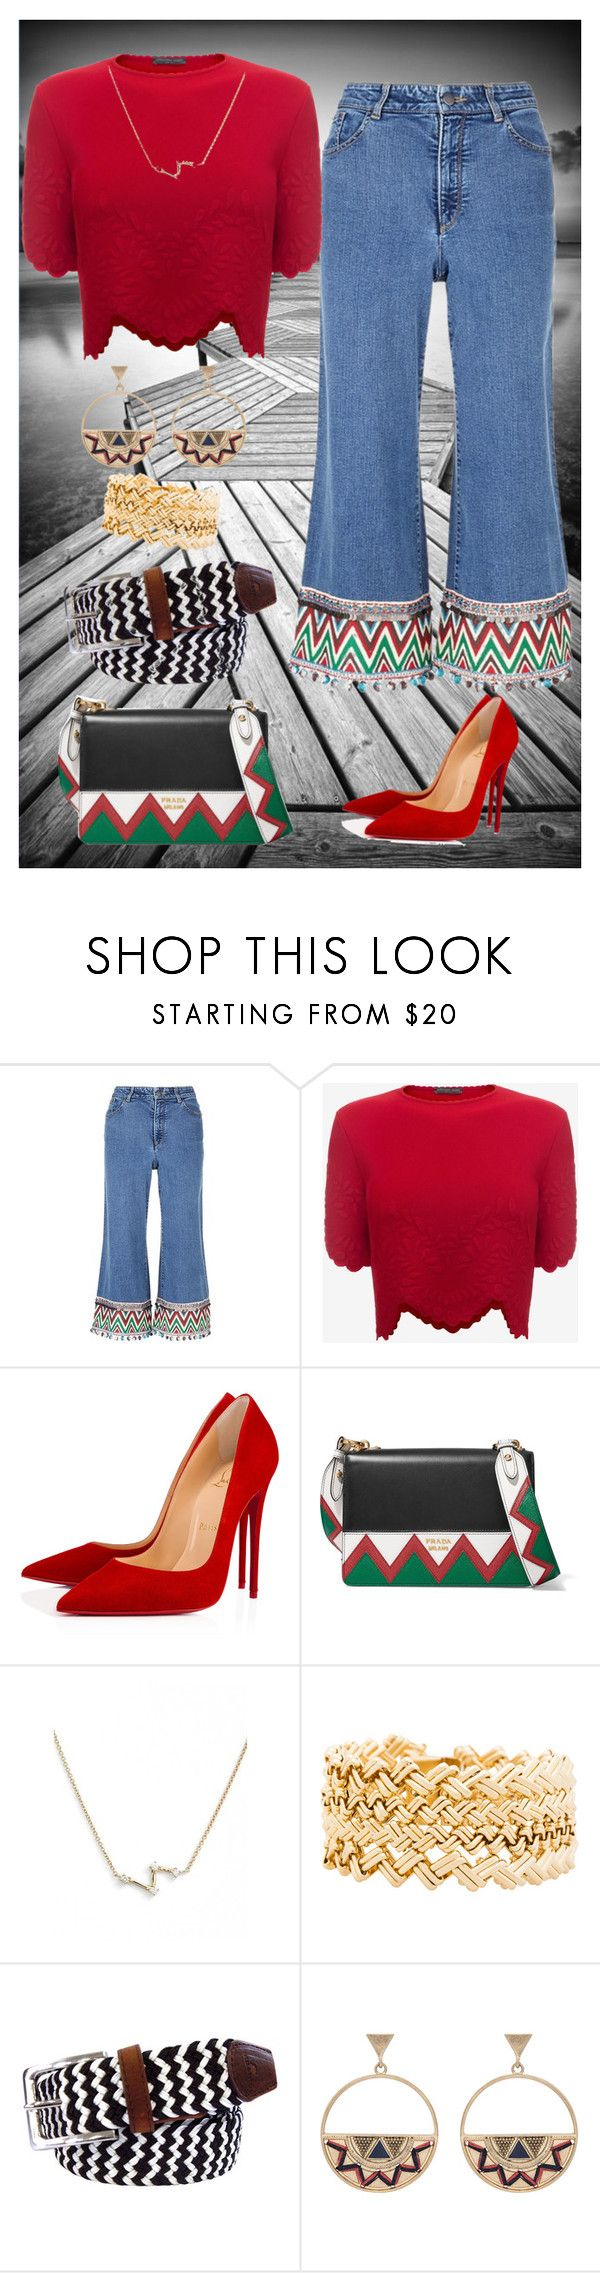 """Untitled #56"" by heinemac ❤ liked on Polyvore featuring Alice + Olivia, Alexander McQueen, Christian Louboutin, Prada, Dana Rebecca Designs, Janis Savitt, Tyler & Tyler and Accessorize"